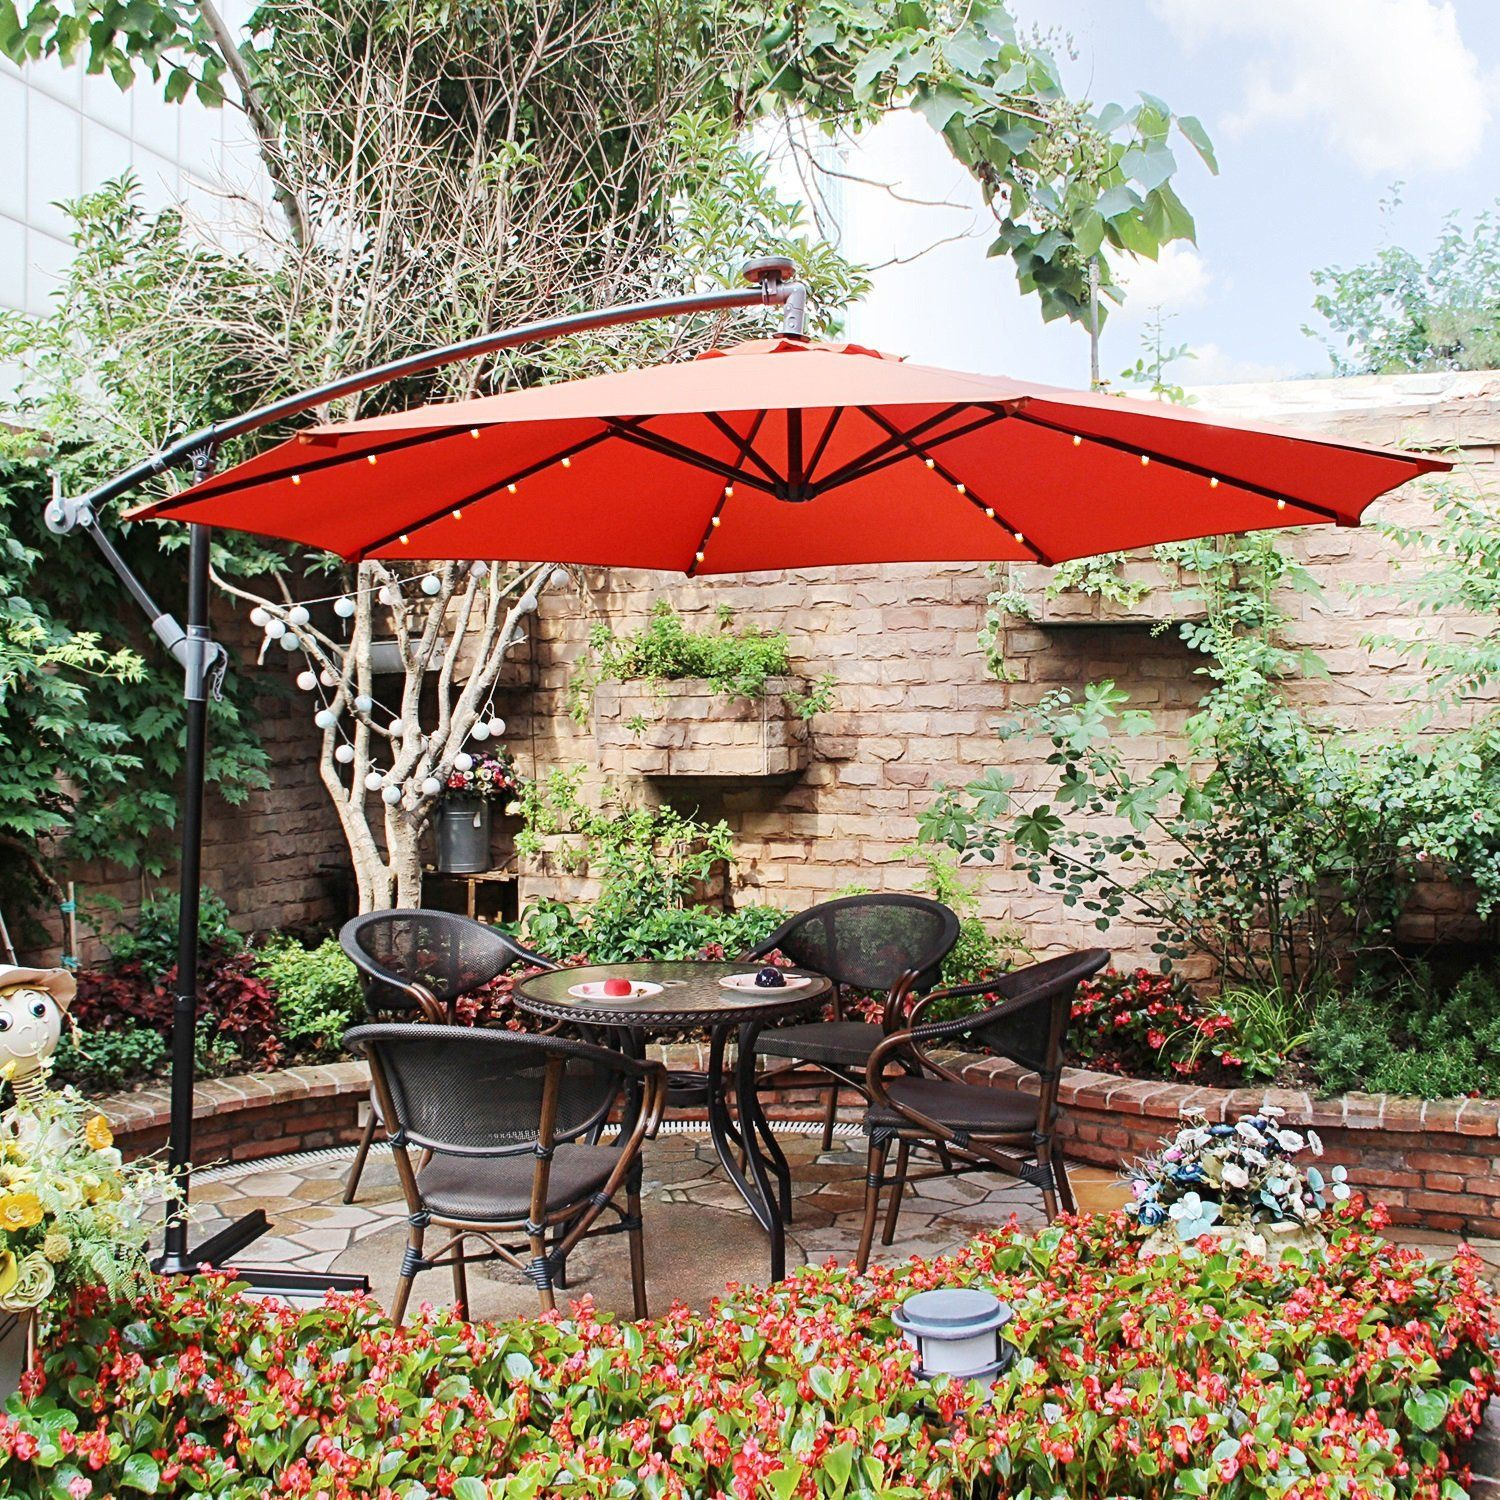 Bali Pro 10 Square Rotating Cantilever Umbrella With Lights Offset Patio Umbrella Patio Umbrella Patio Umbrellas